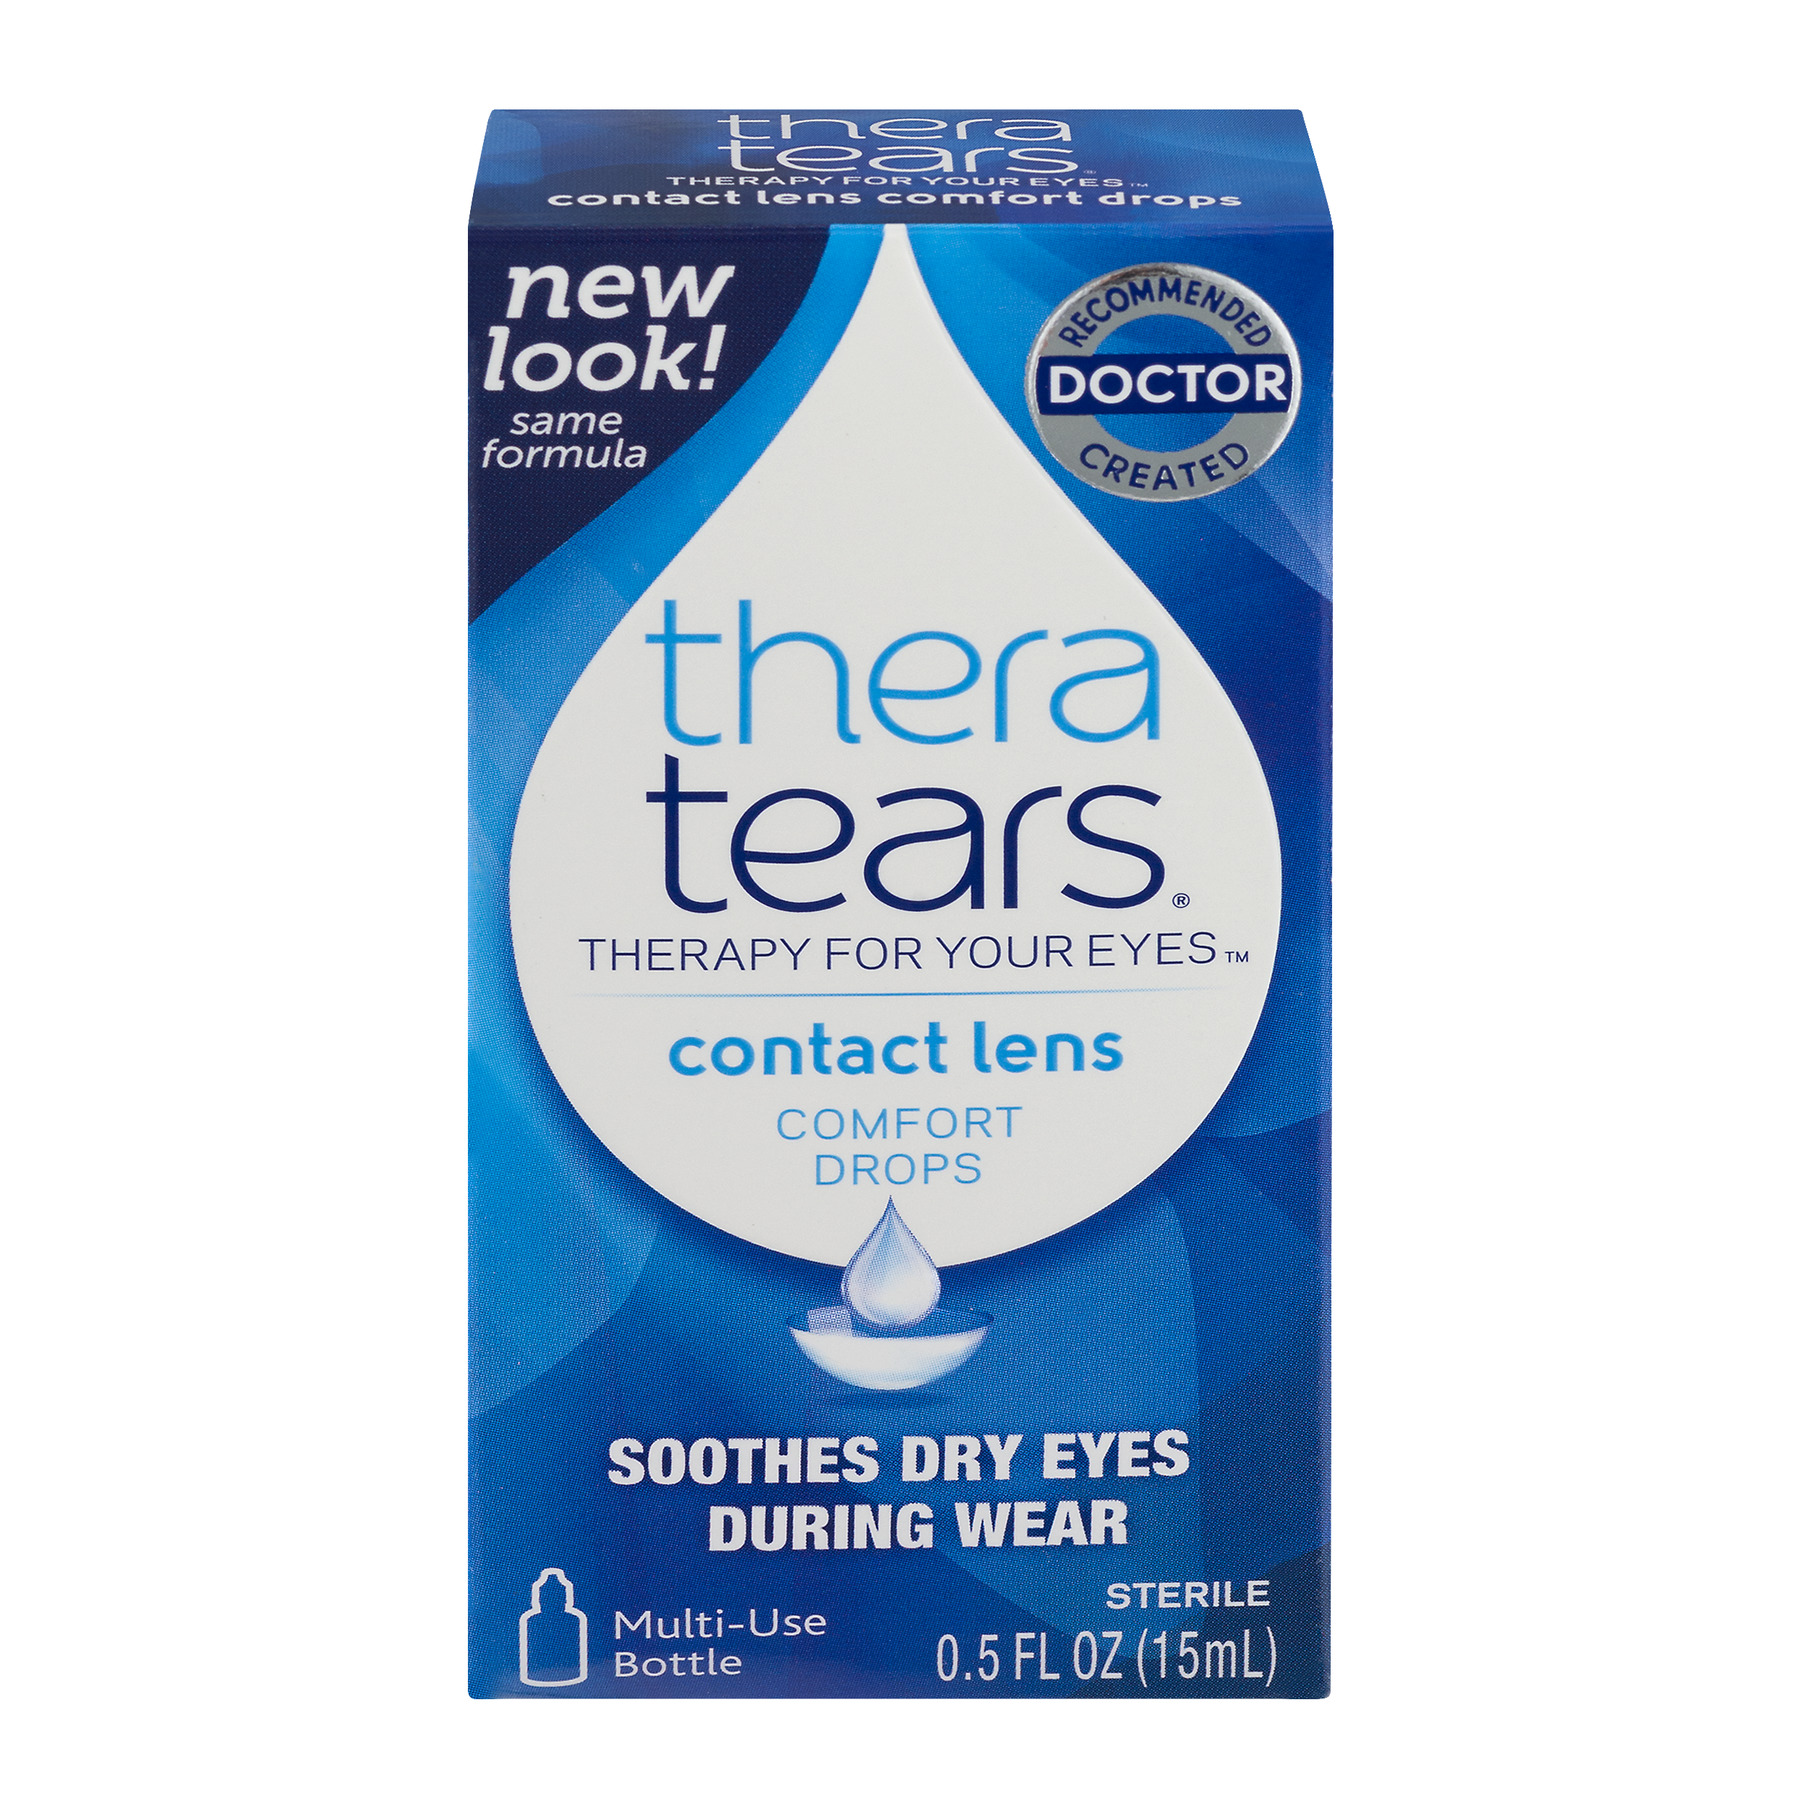 Thera Tears Contact Lens Comfort Drops, 0.5 FL OZ